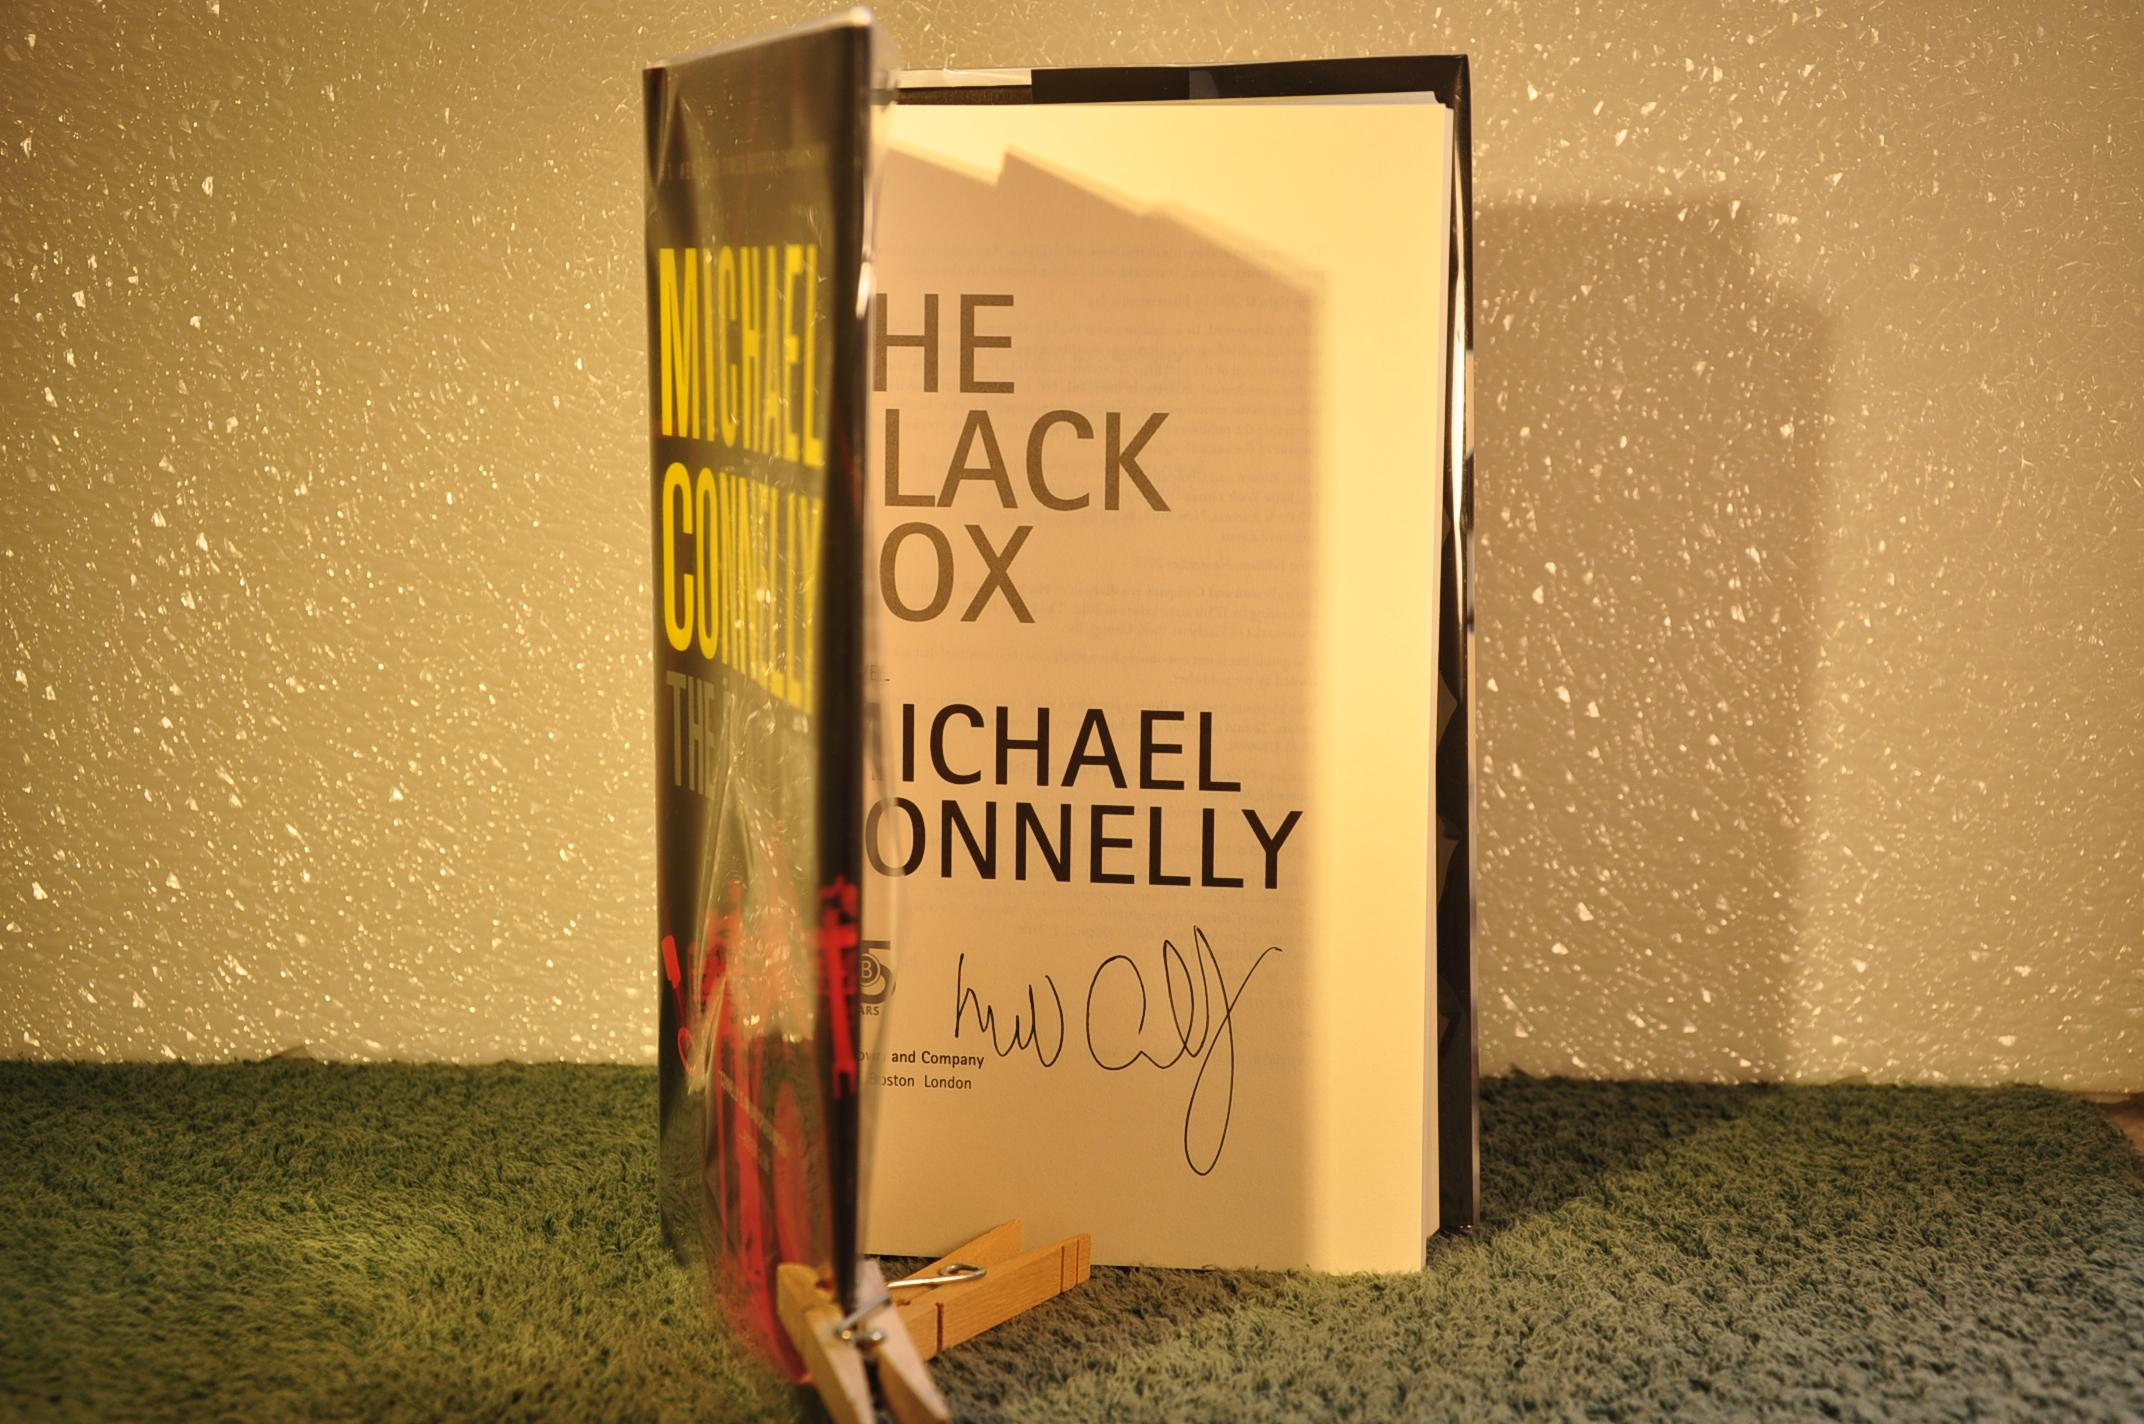 the black box connelly michael